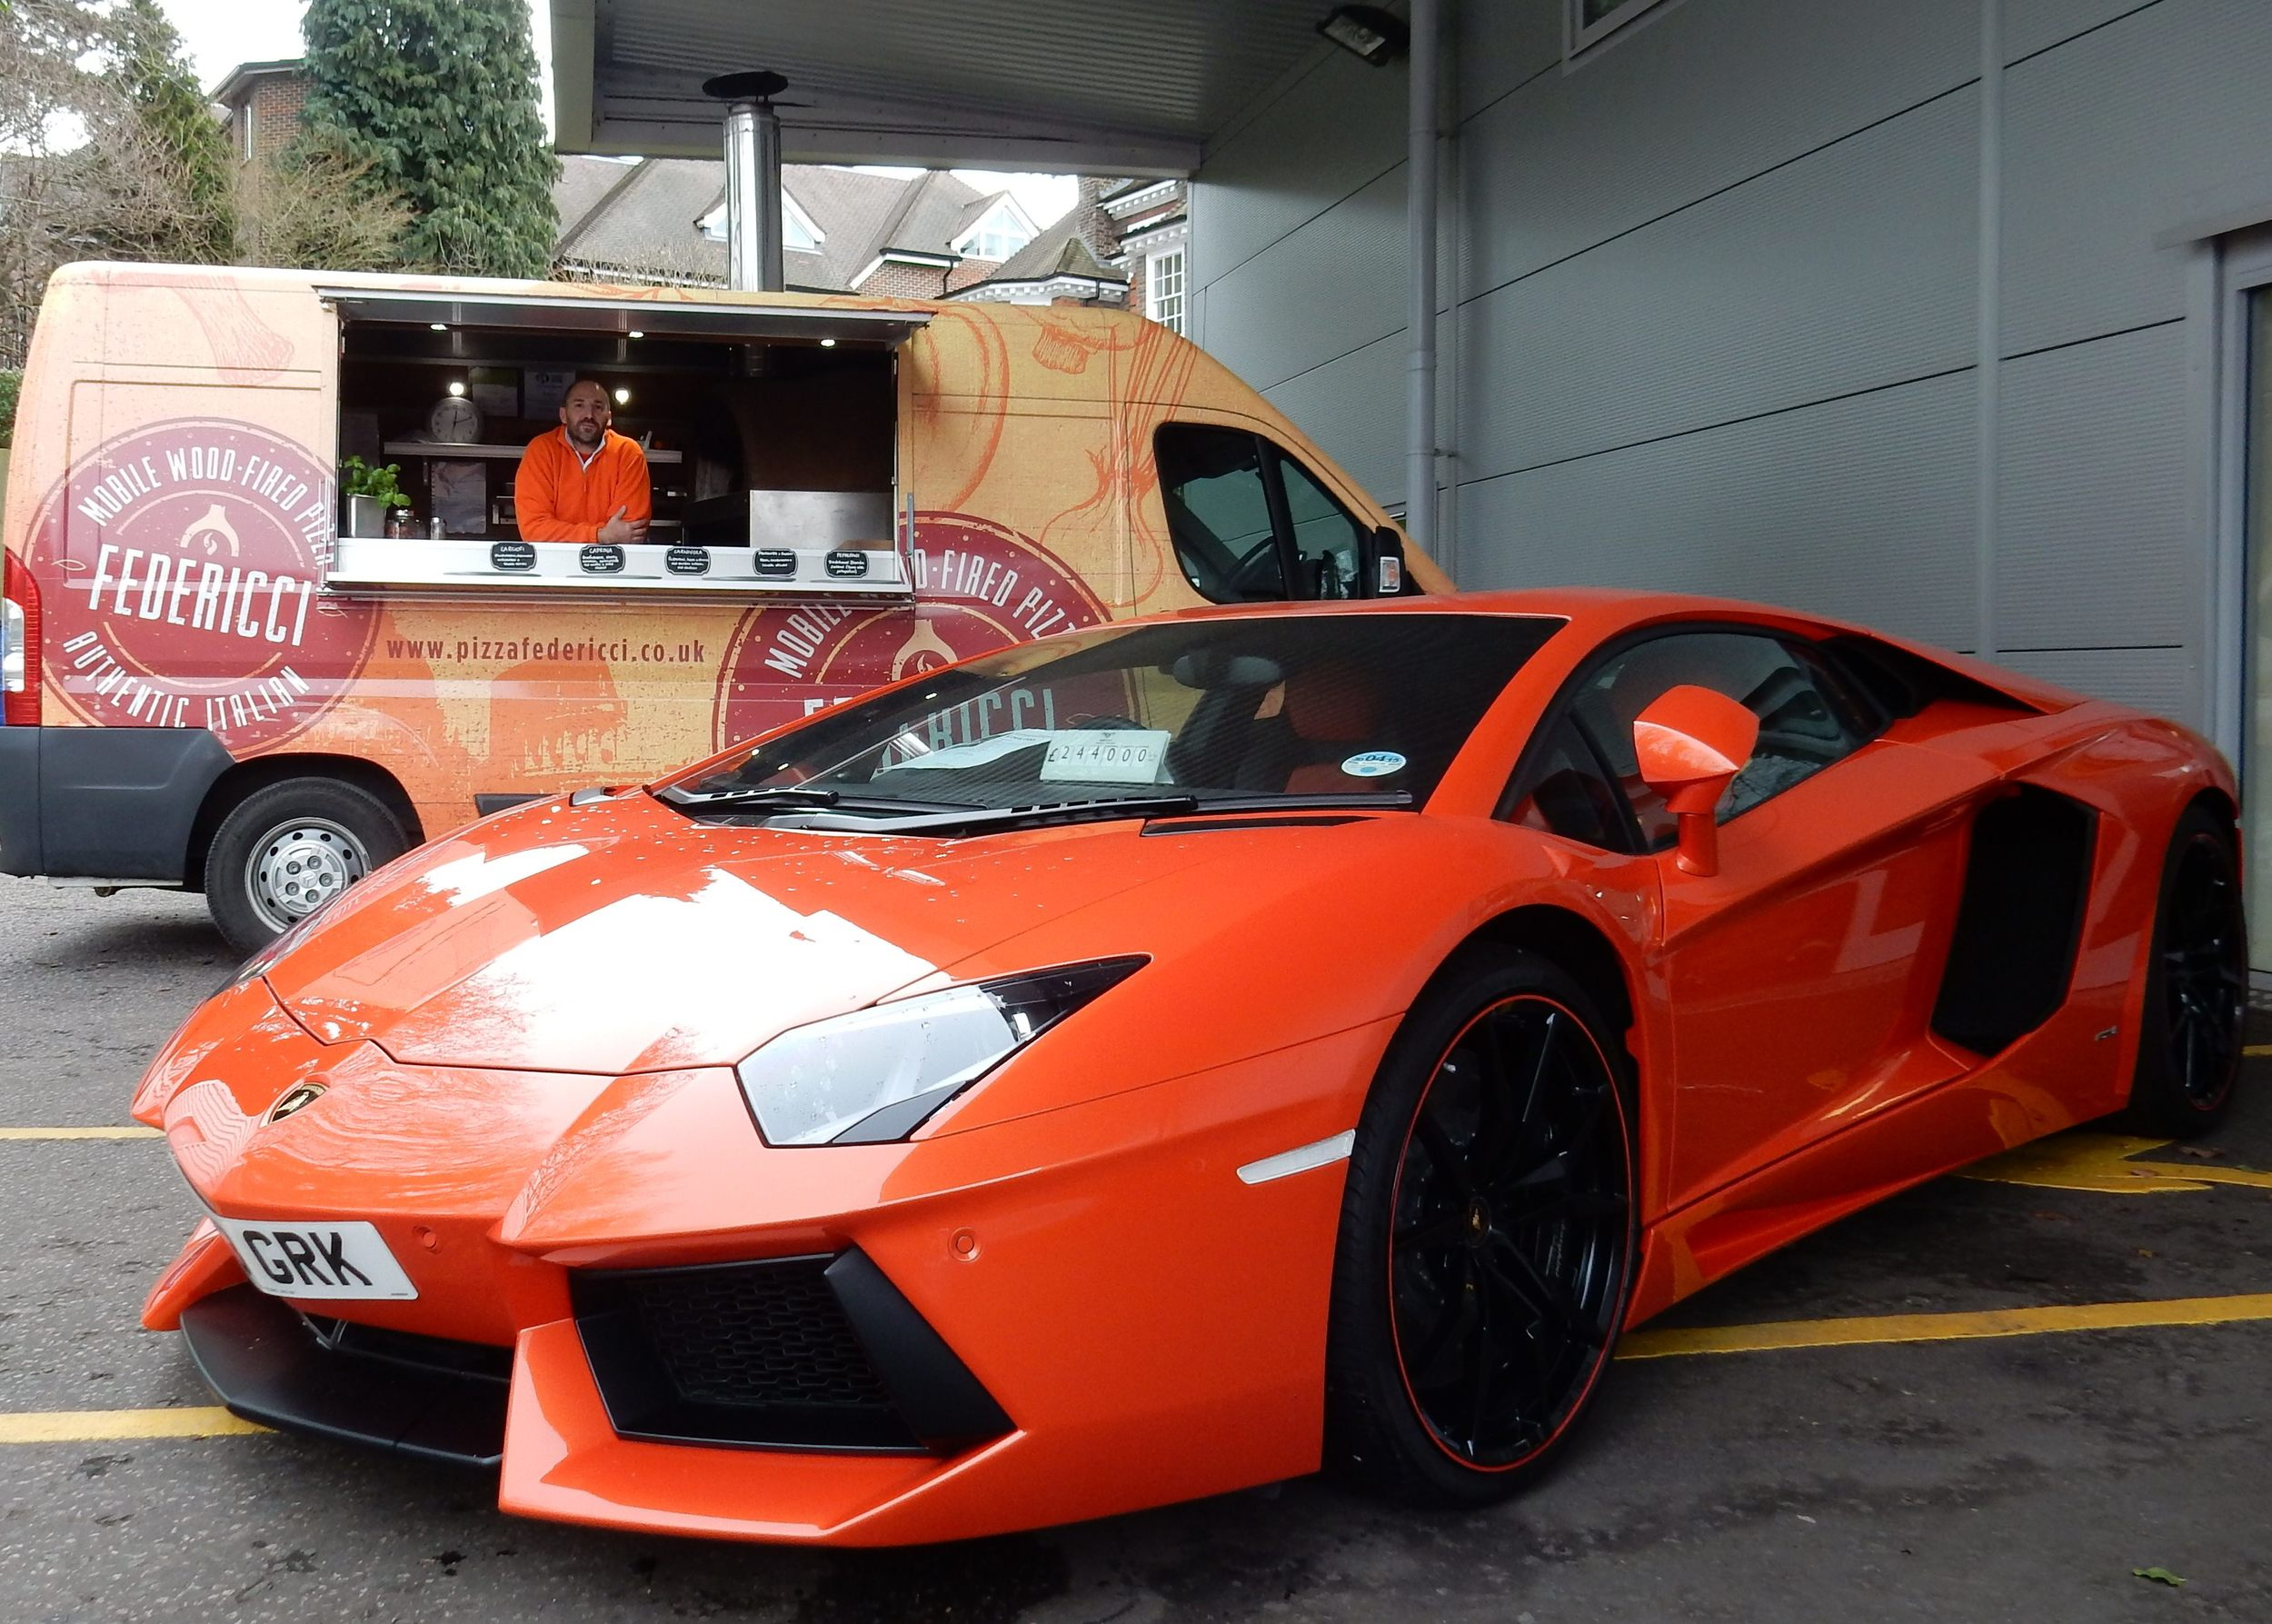 Preparing for a Client Drive Event at Lamborghini Sevenoaks - thank you for providing a car in our team colours!